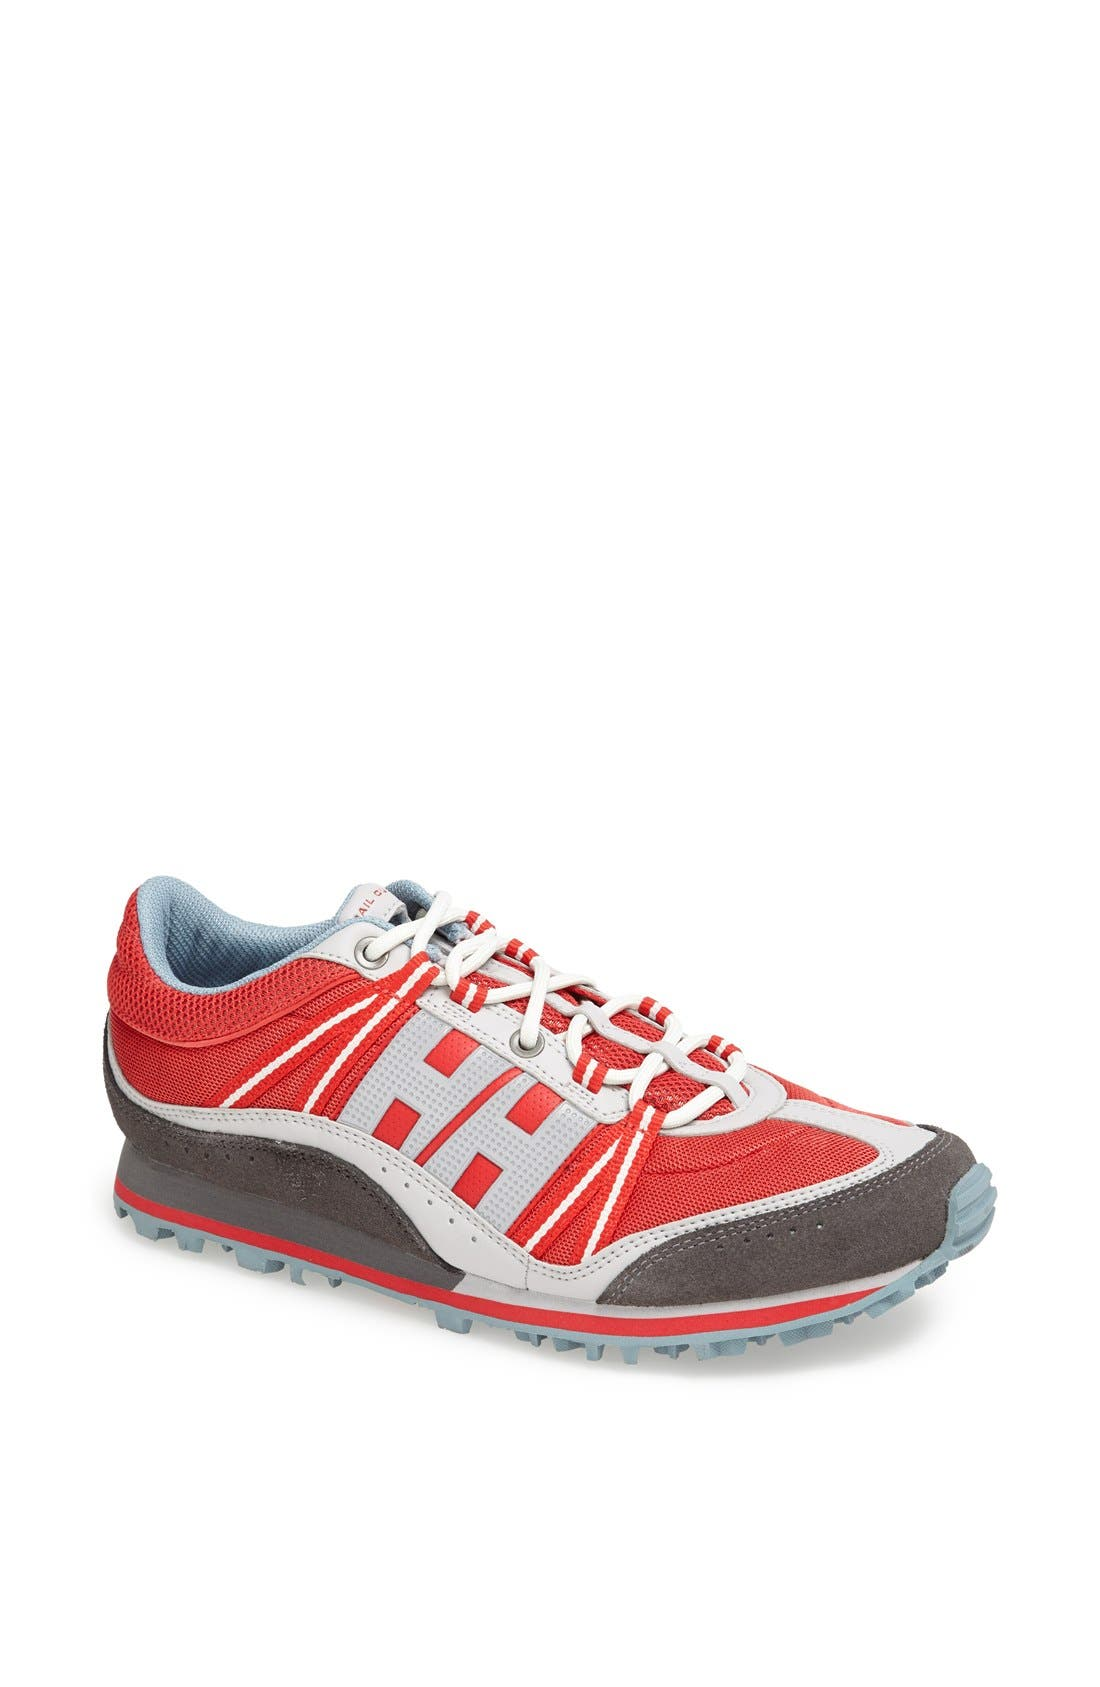 Main Image - Helly Hansen 'Trail Cutter 5' Running Shoe (Women)